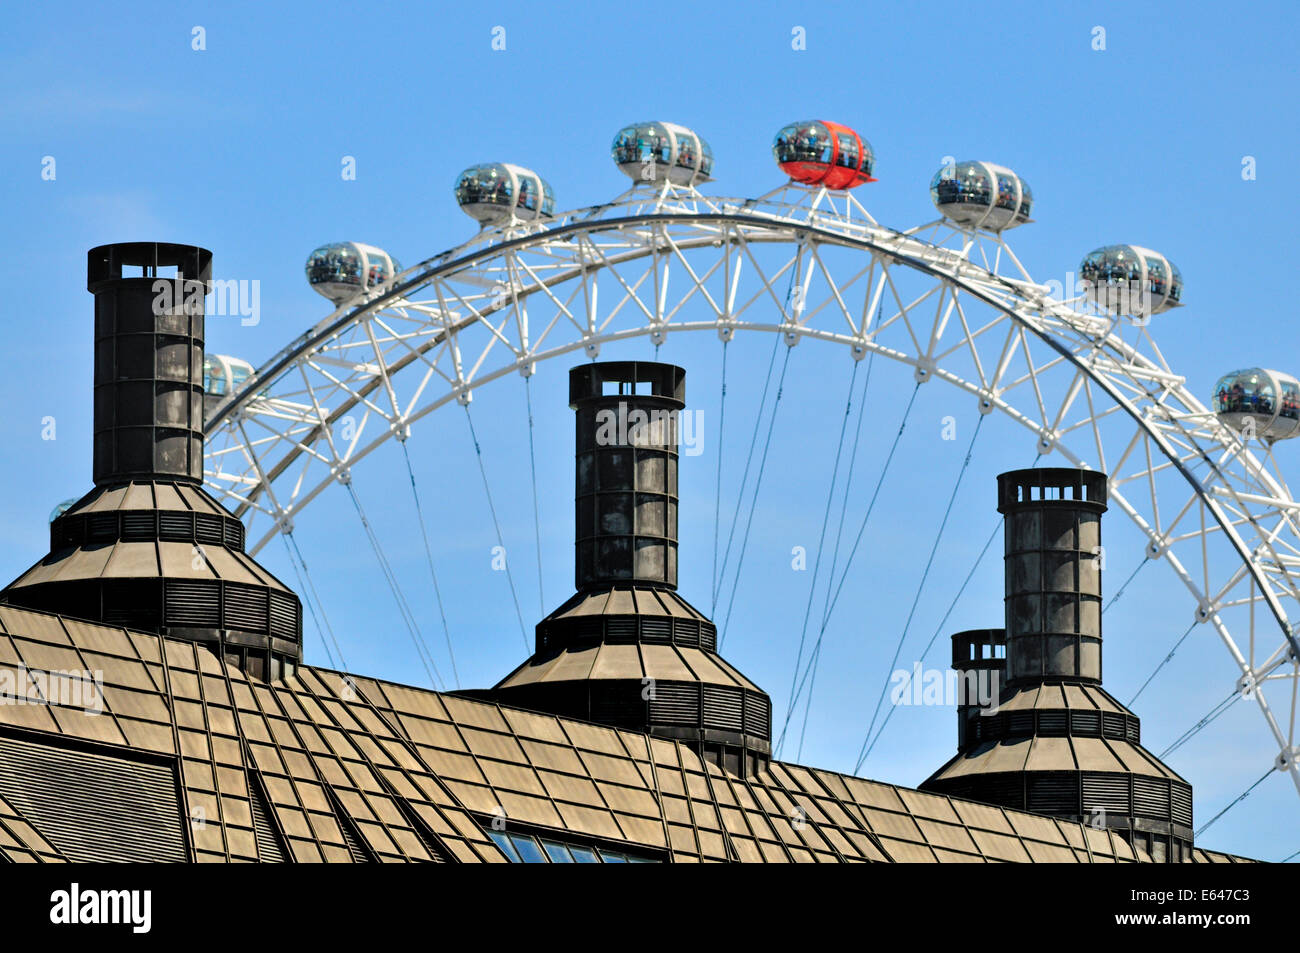 London, England, UK. The London Eye behind the roof of Portcullis House (Parliament Square) - Stock Image